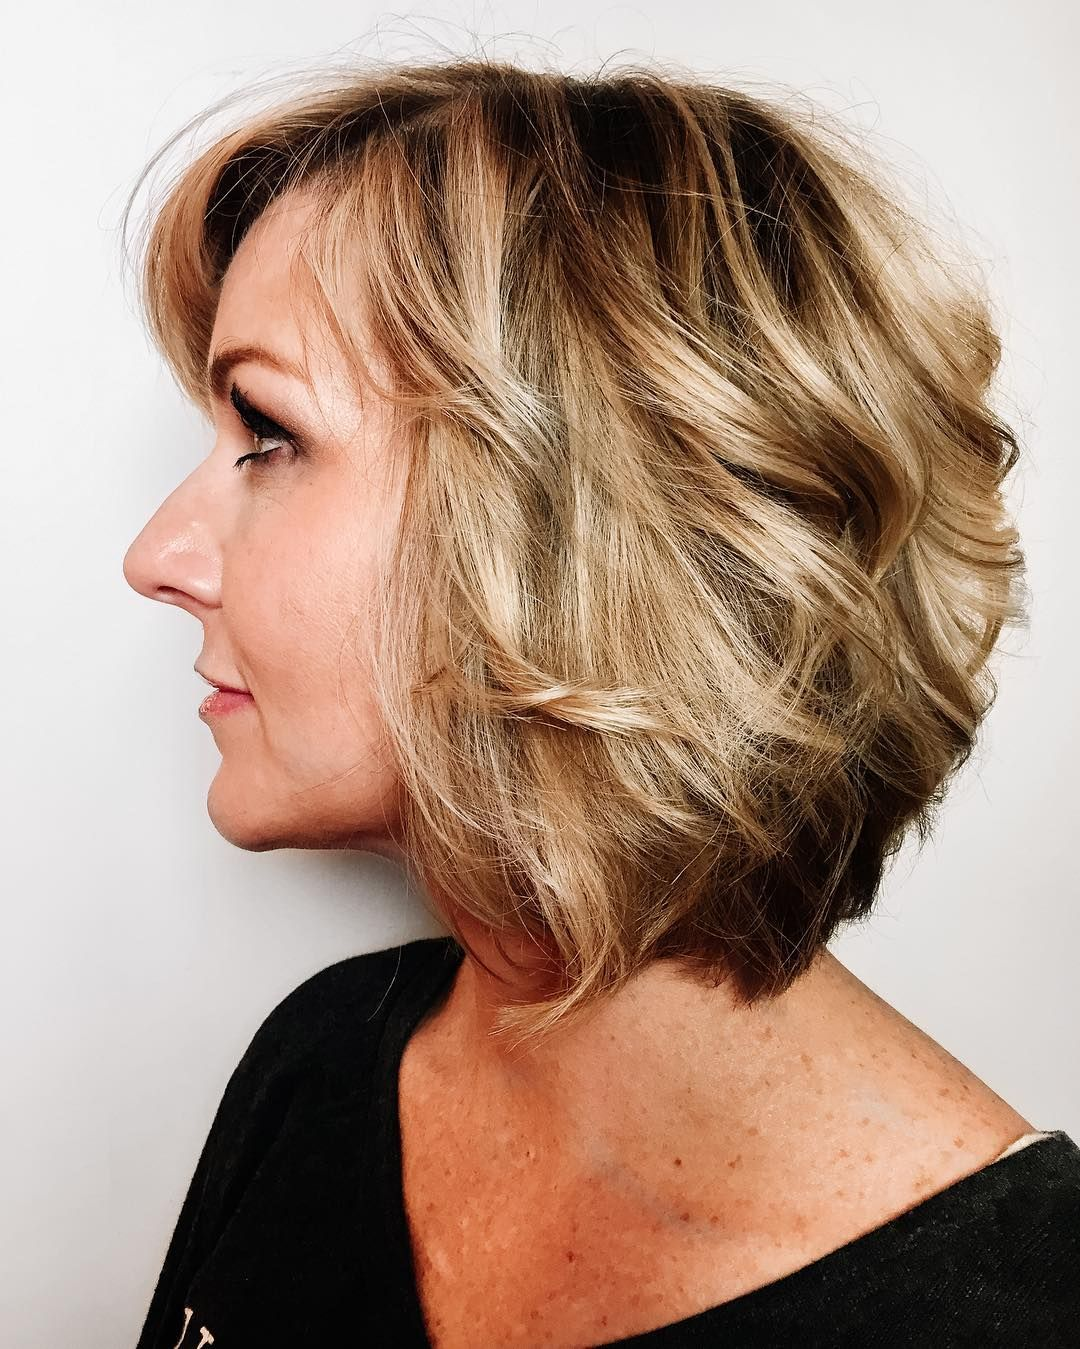 Cool inspirational ideas for short haircuts short hair trends